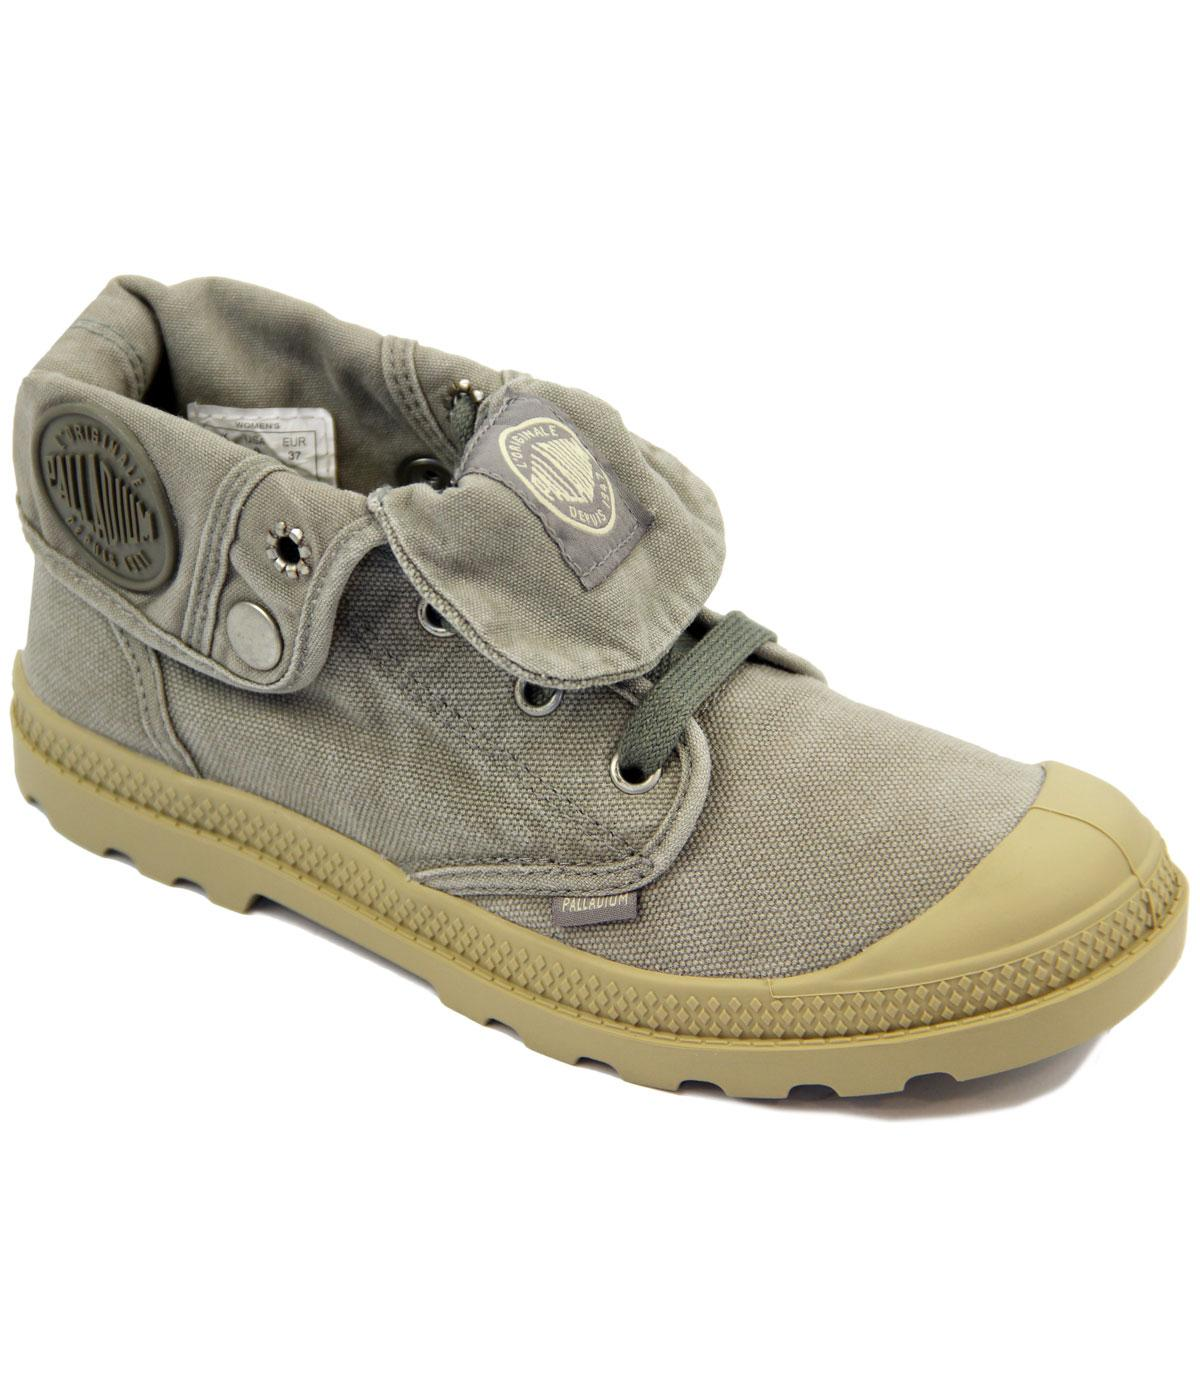 Baggy Low PALLADIUM Womens Retro Canvas Boots C/P